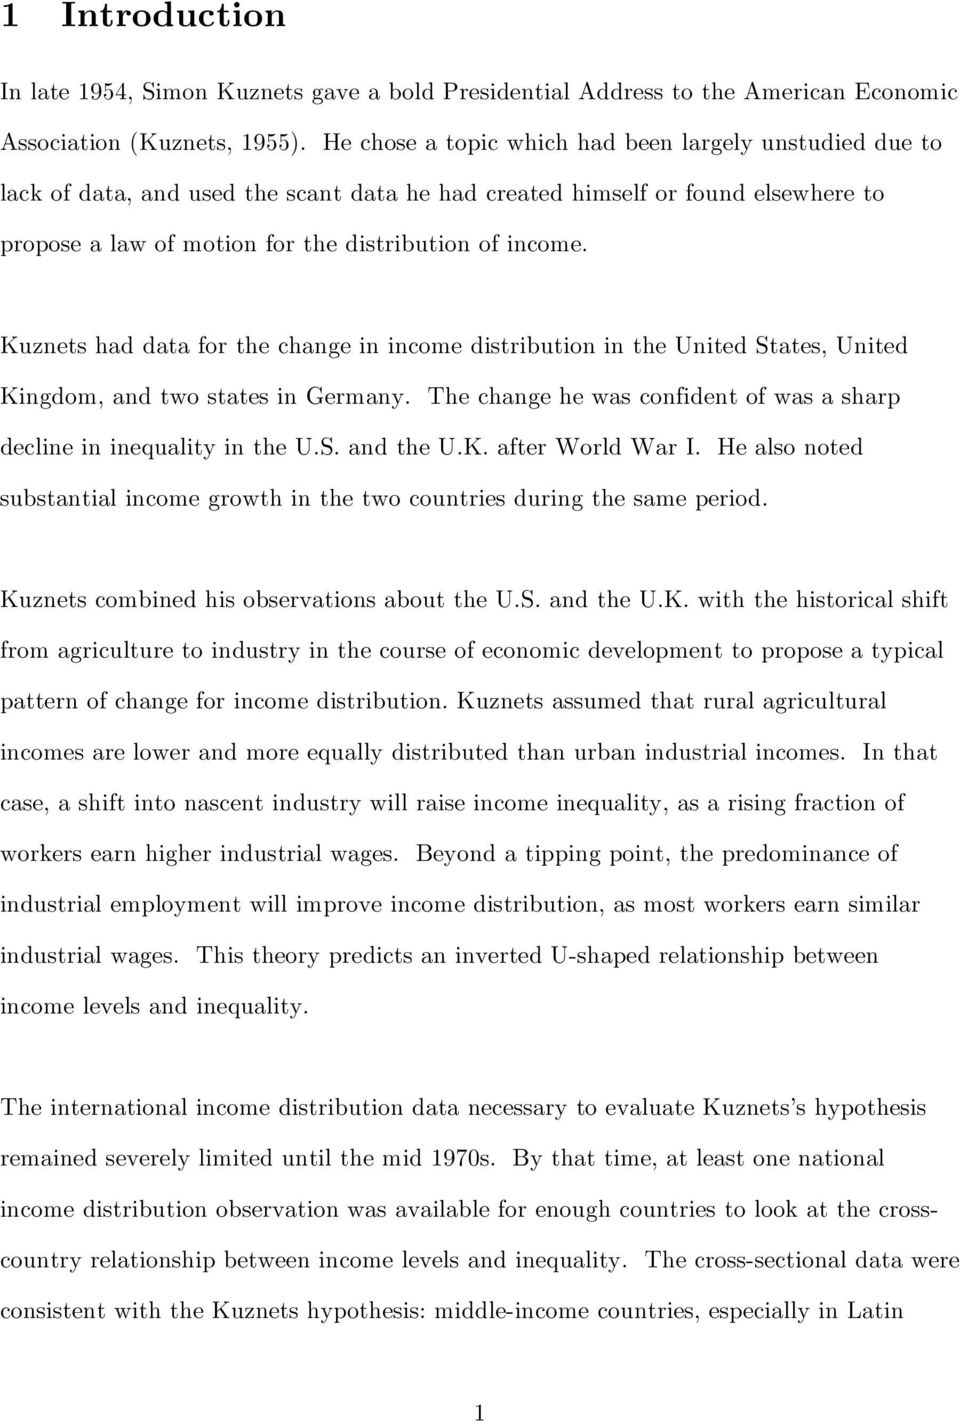 Kuznets had data for the change in income distribution in the United States, United Kingdom, and two states in Germany. The change he was confident of was a sharp decline in inequality in the U.S. and the U.